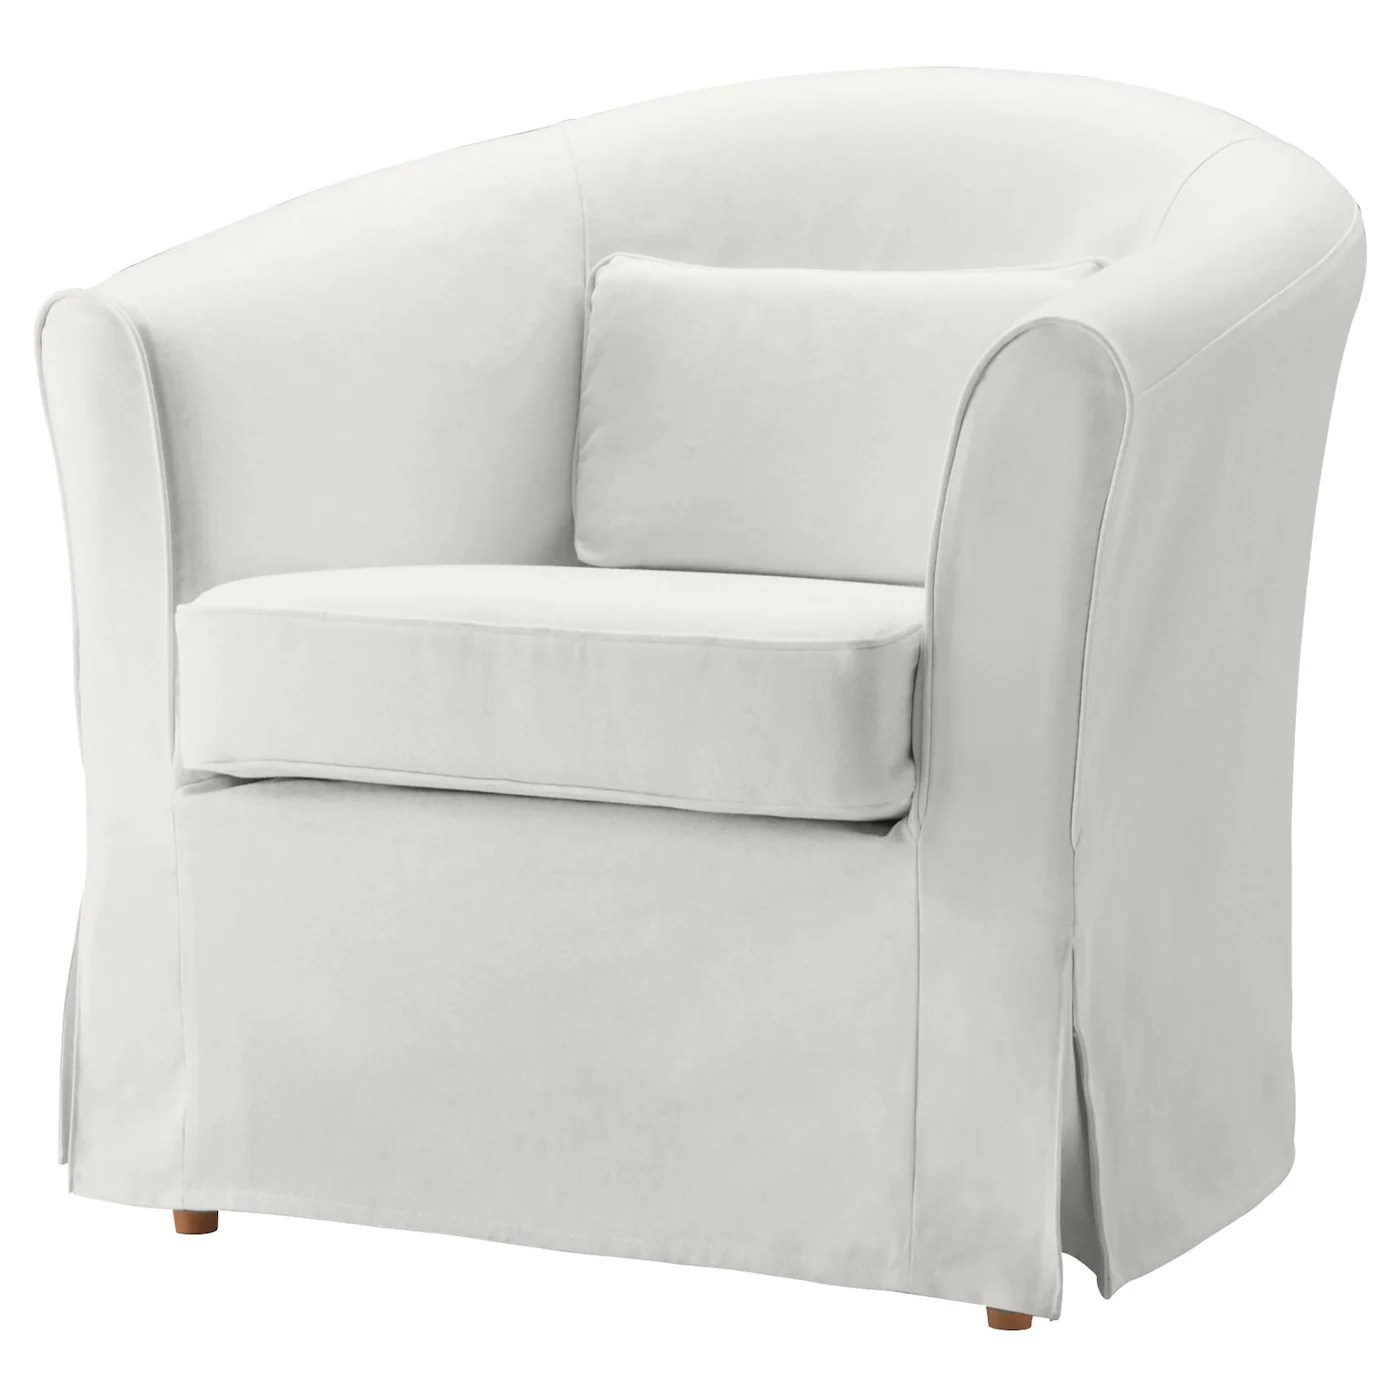 tub chair covers ireland and more houston fabric armchairs ikea dublin tullsta armchair the cover is easy to keep clean as it removable can